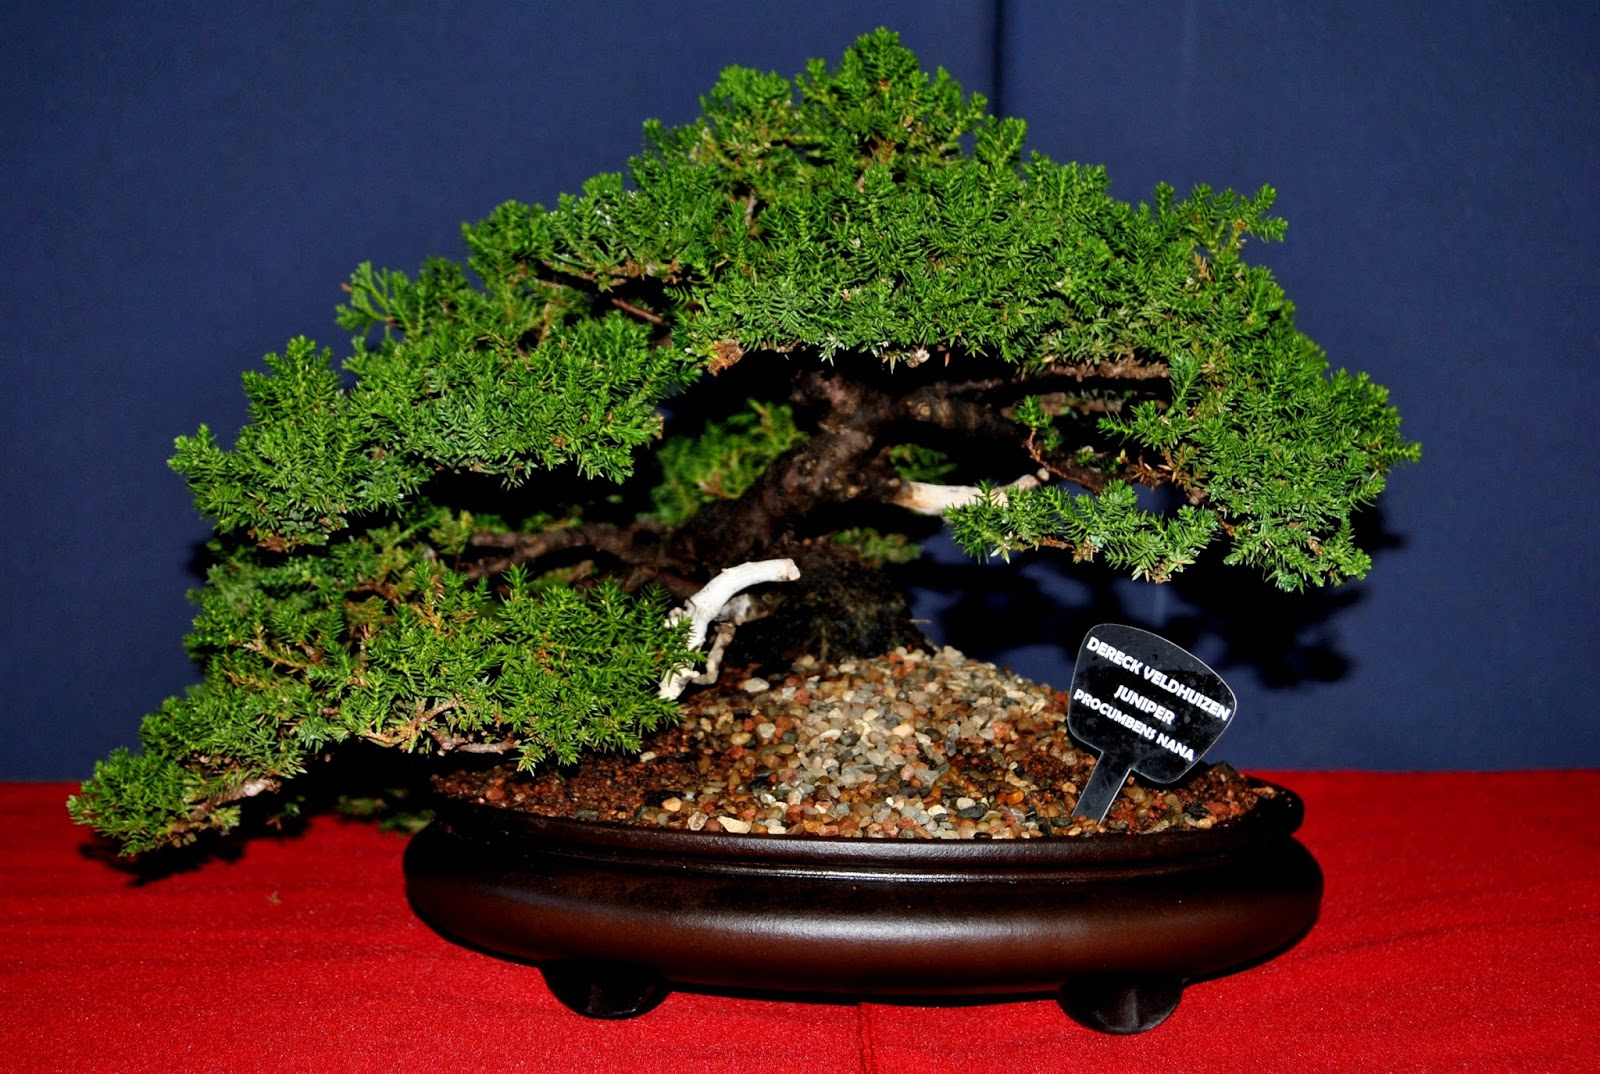 Brat Regional Bonsai Meaning Exhibited Trees LENNARD39S BONSAI